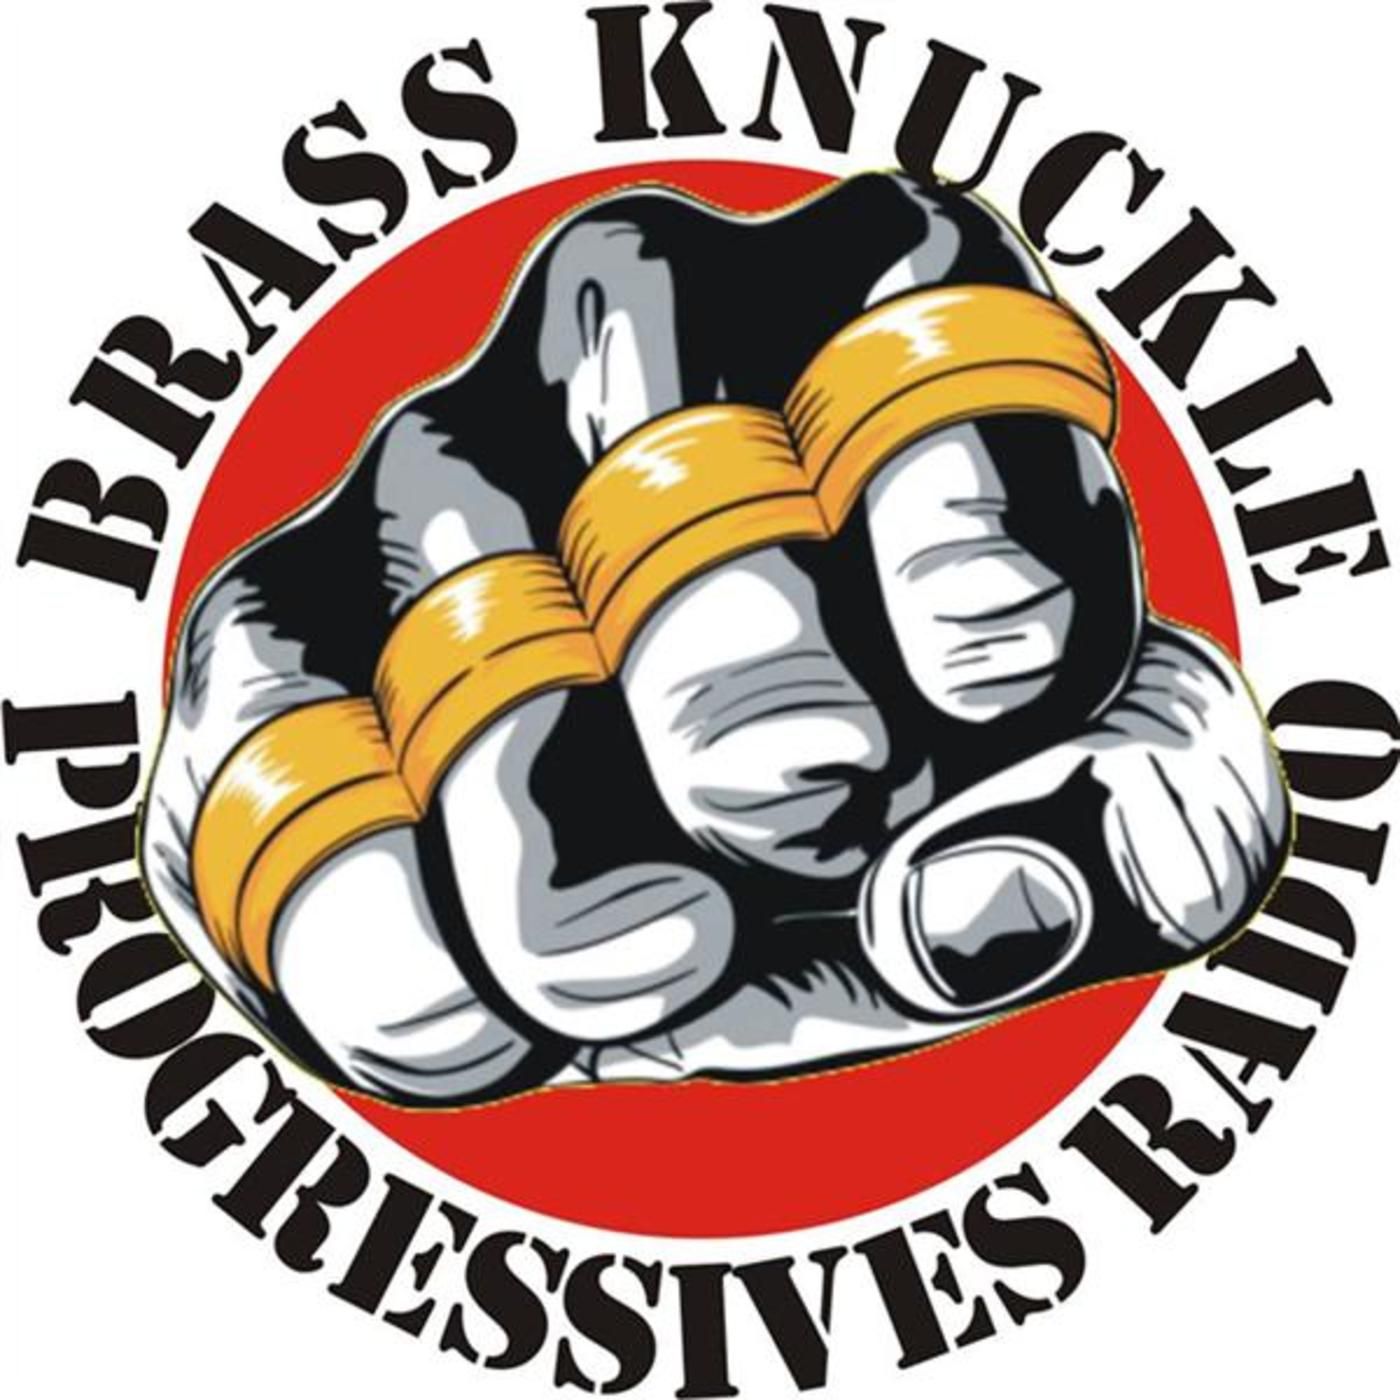 Brass Knuckle Progressives Radio